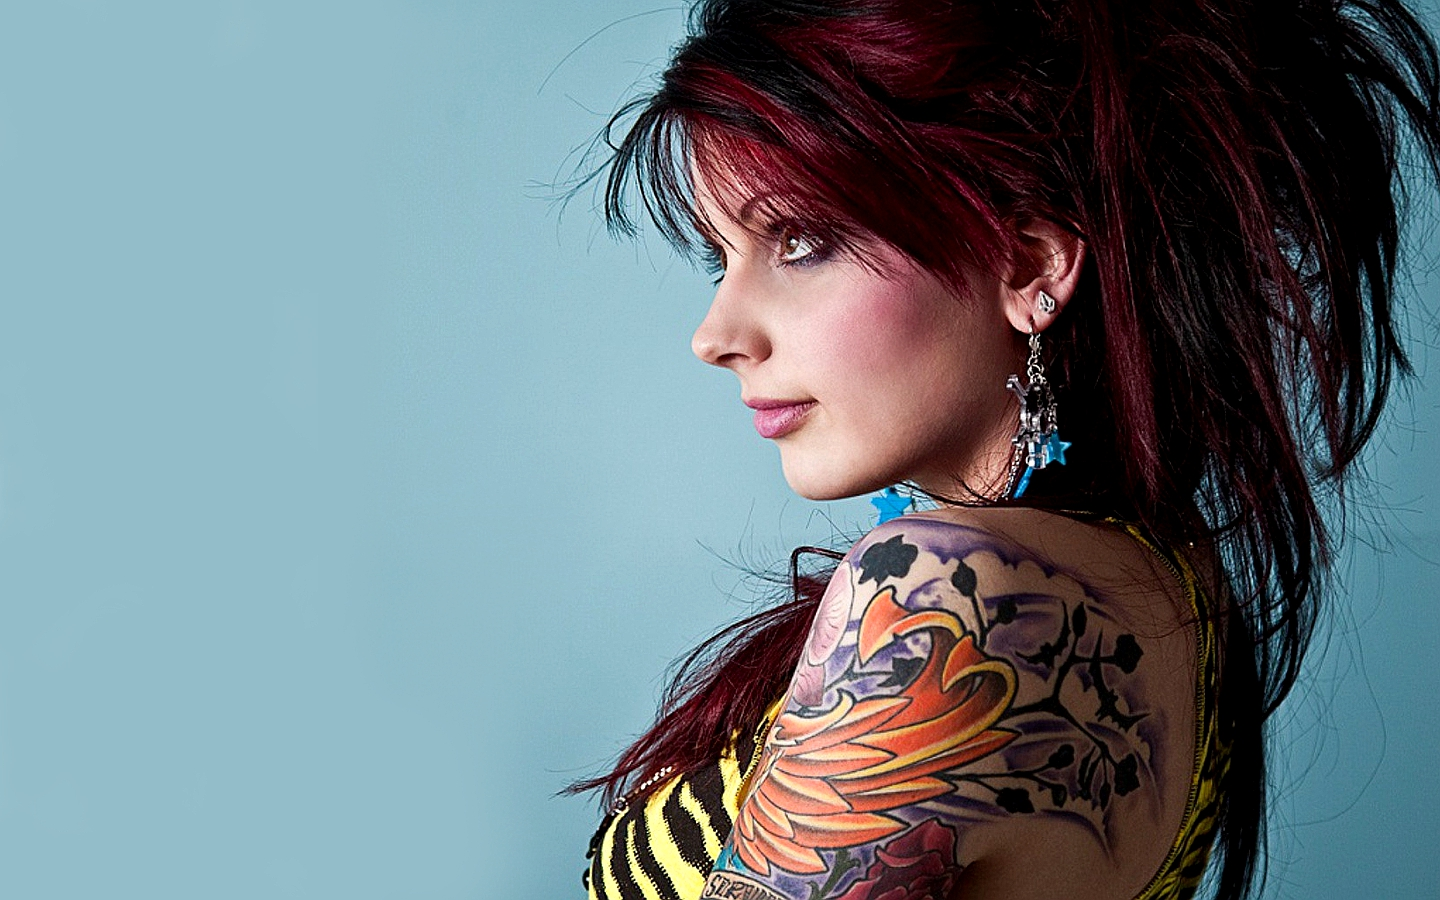 tattoo girl hd wallpaper - photo #19